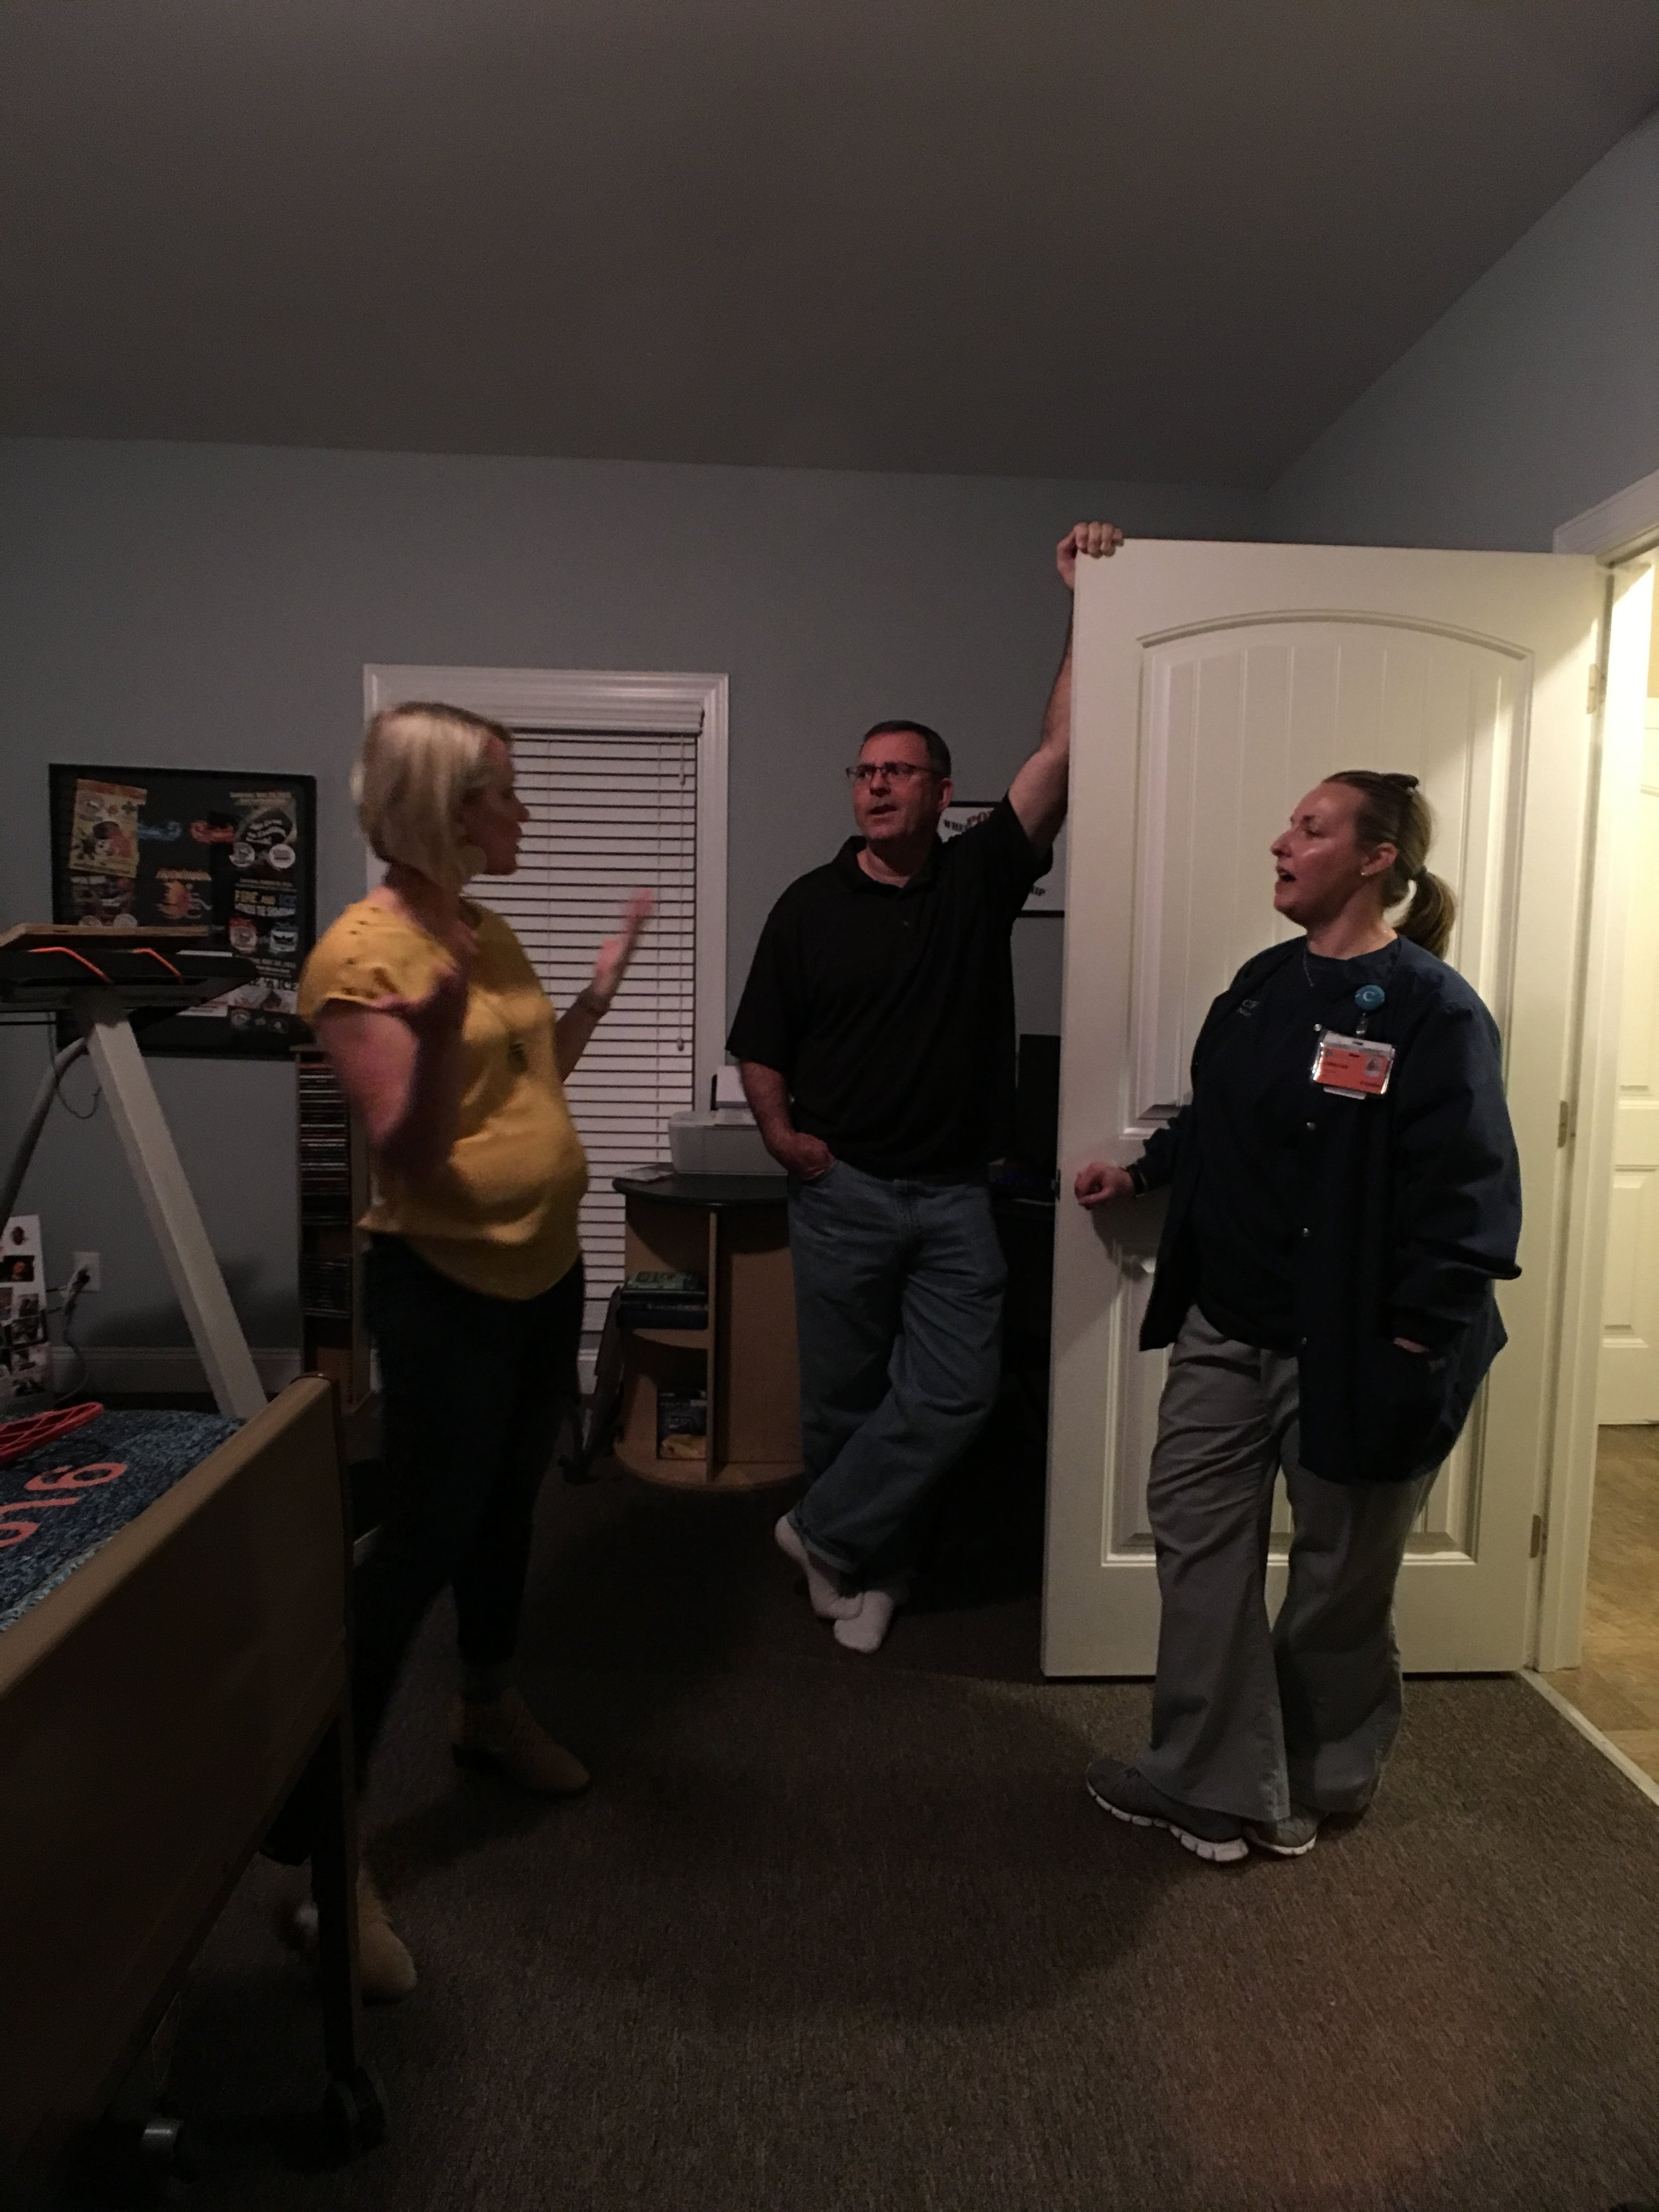 We were honored to visit their son's room, which for the most part remained untouched. This family was such an insipration to us and we loved every minute we had with them.